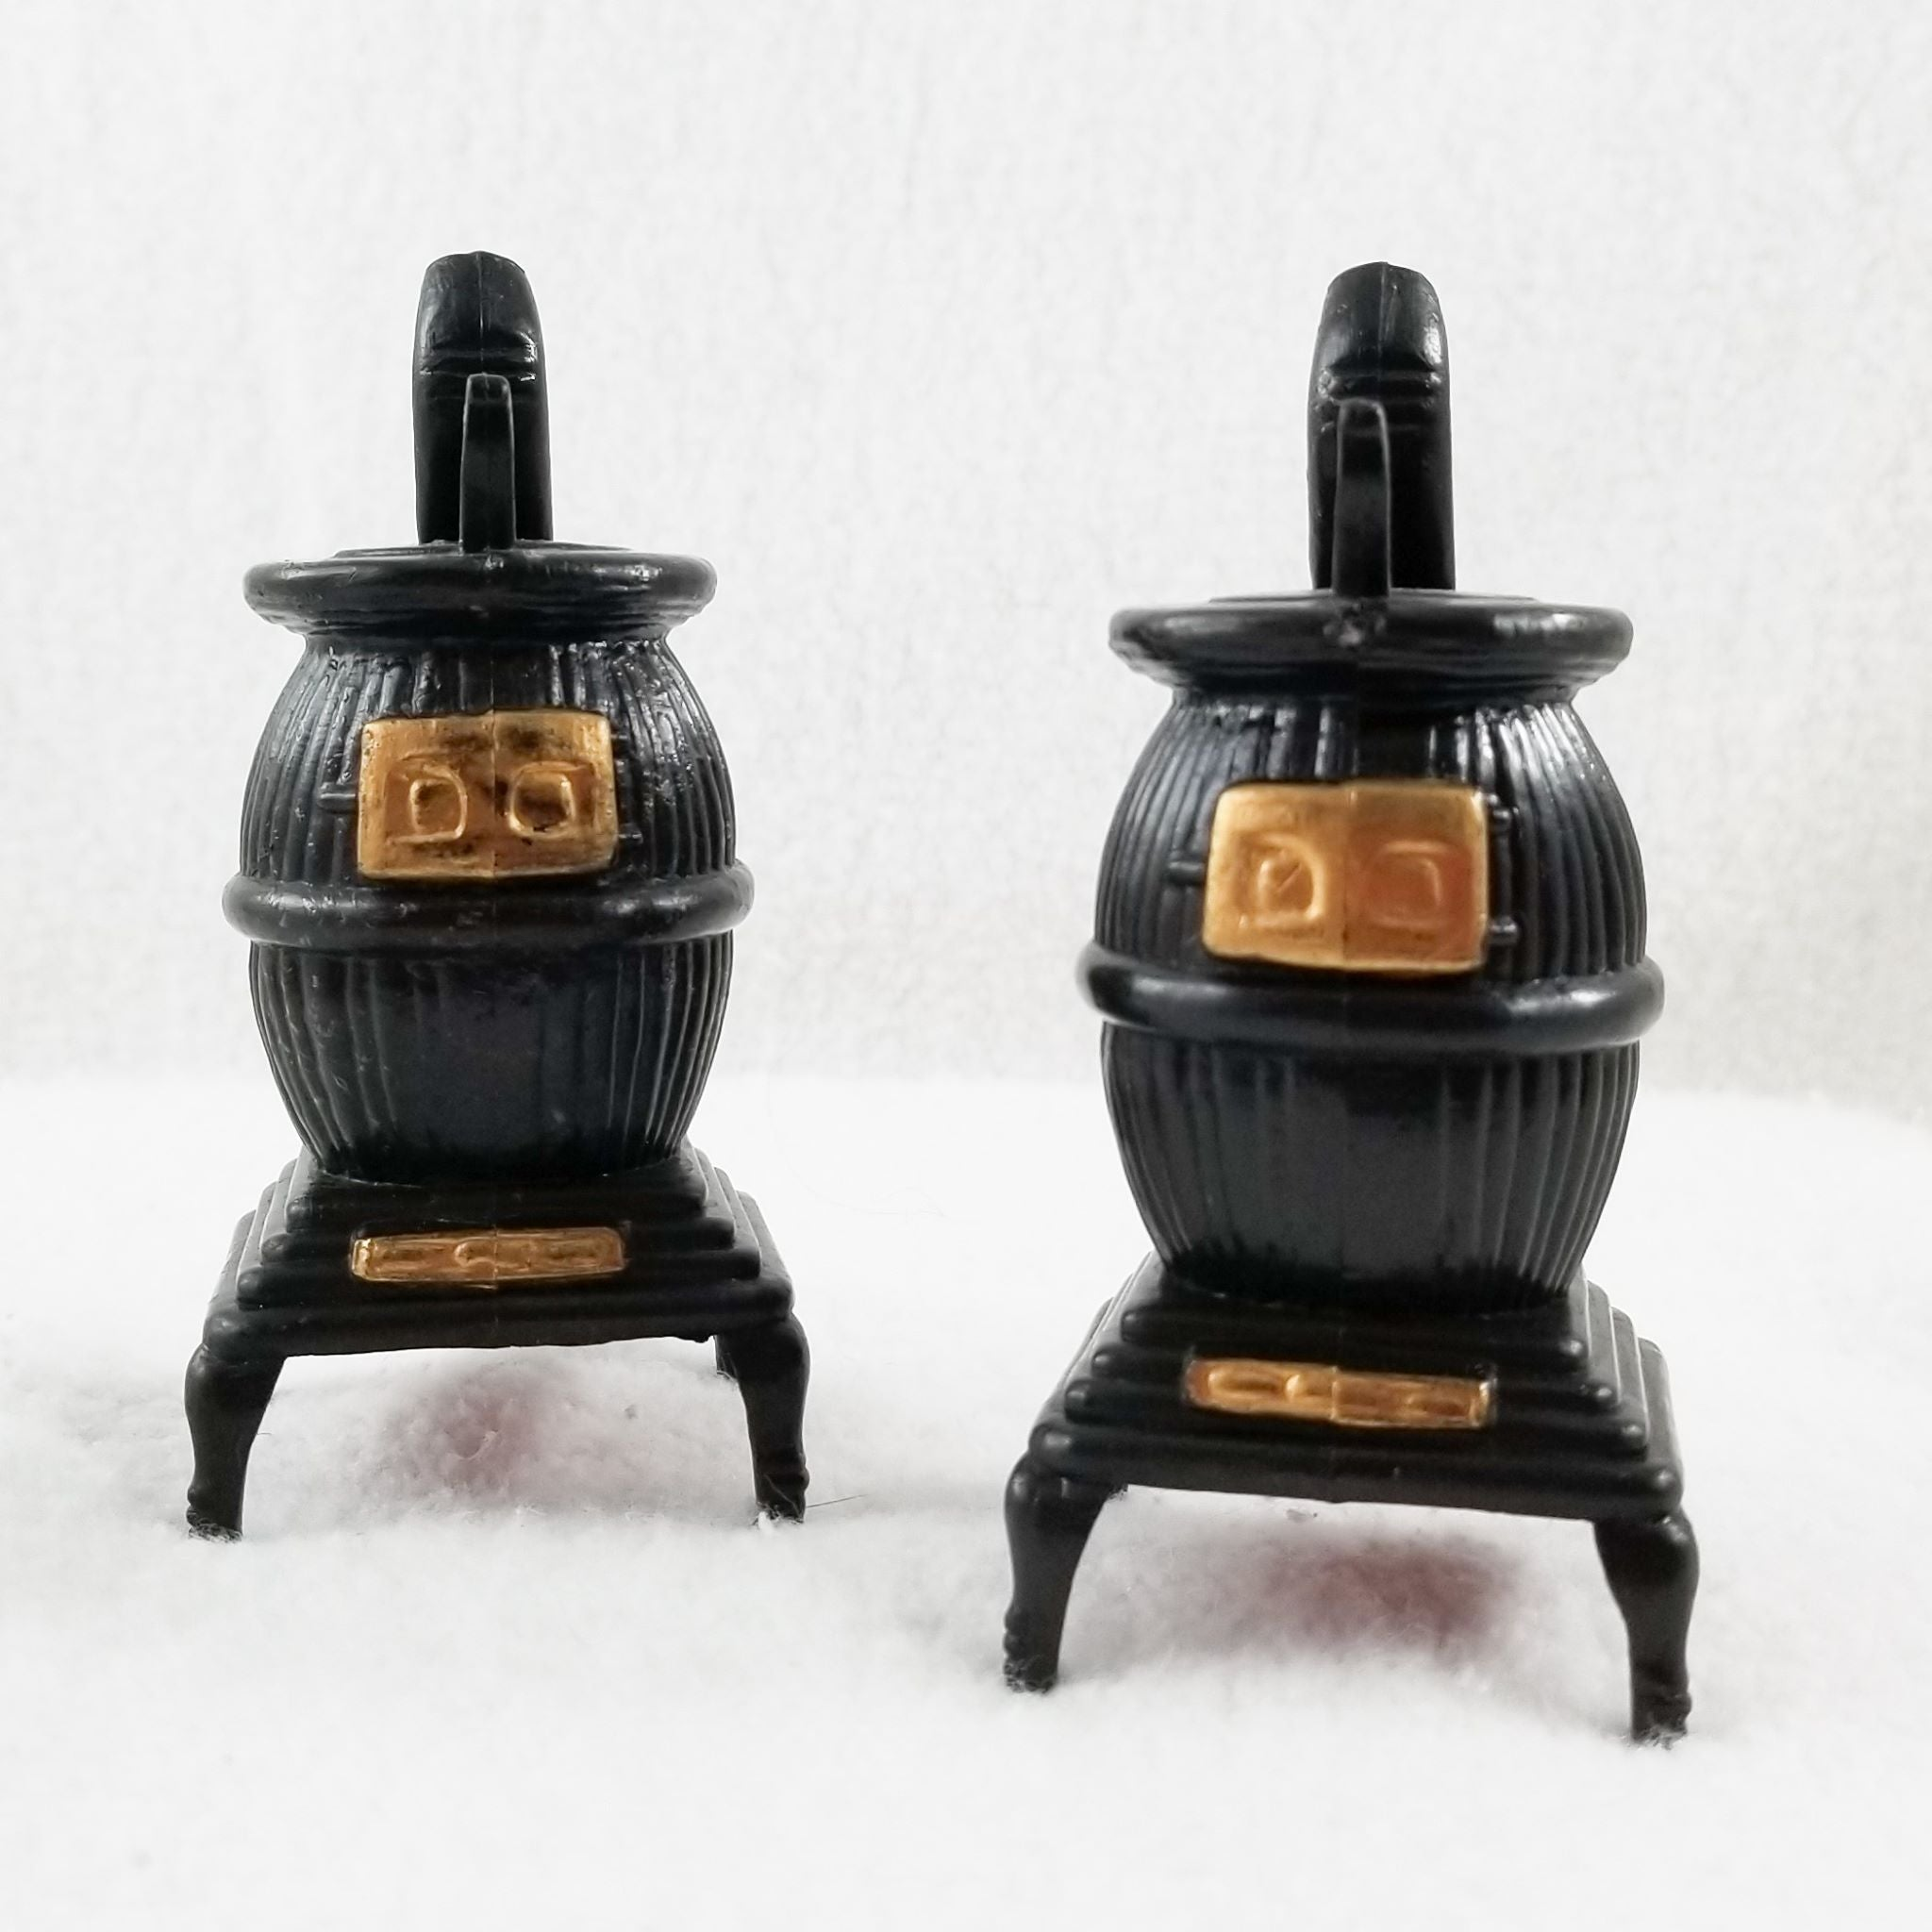 Kitchy Plastic Pot Belly Stove Vintage Salt and Pepper Shakers